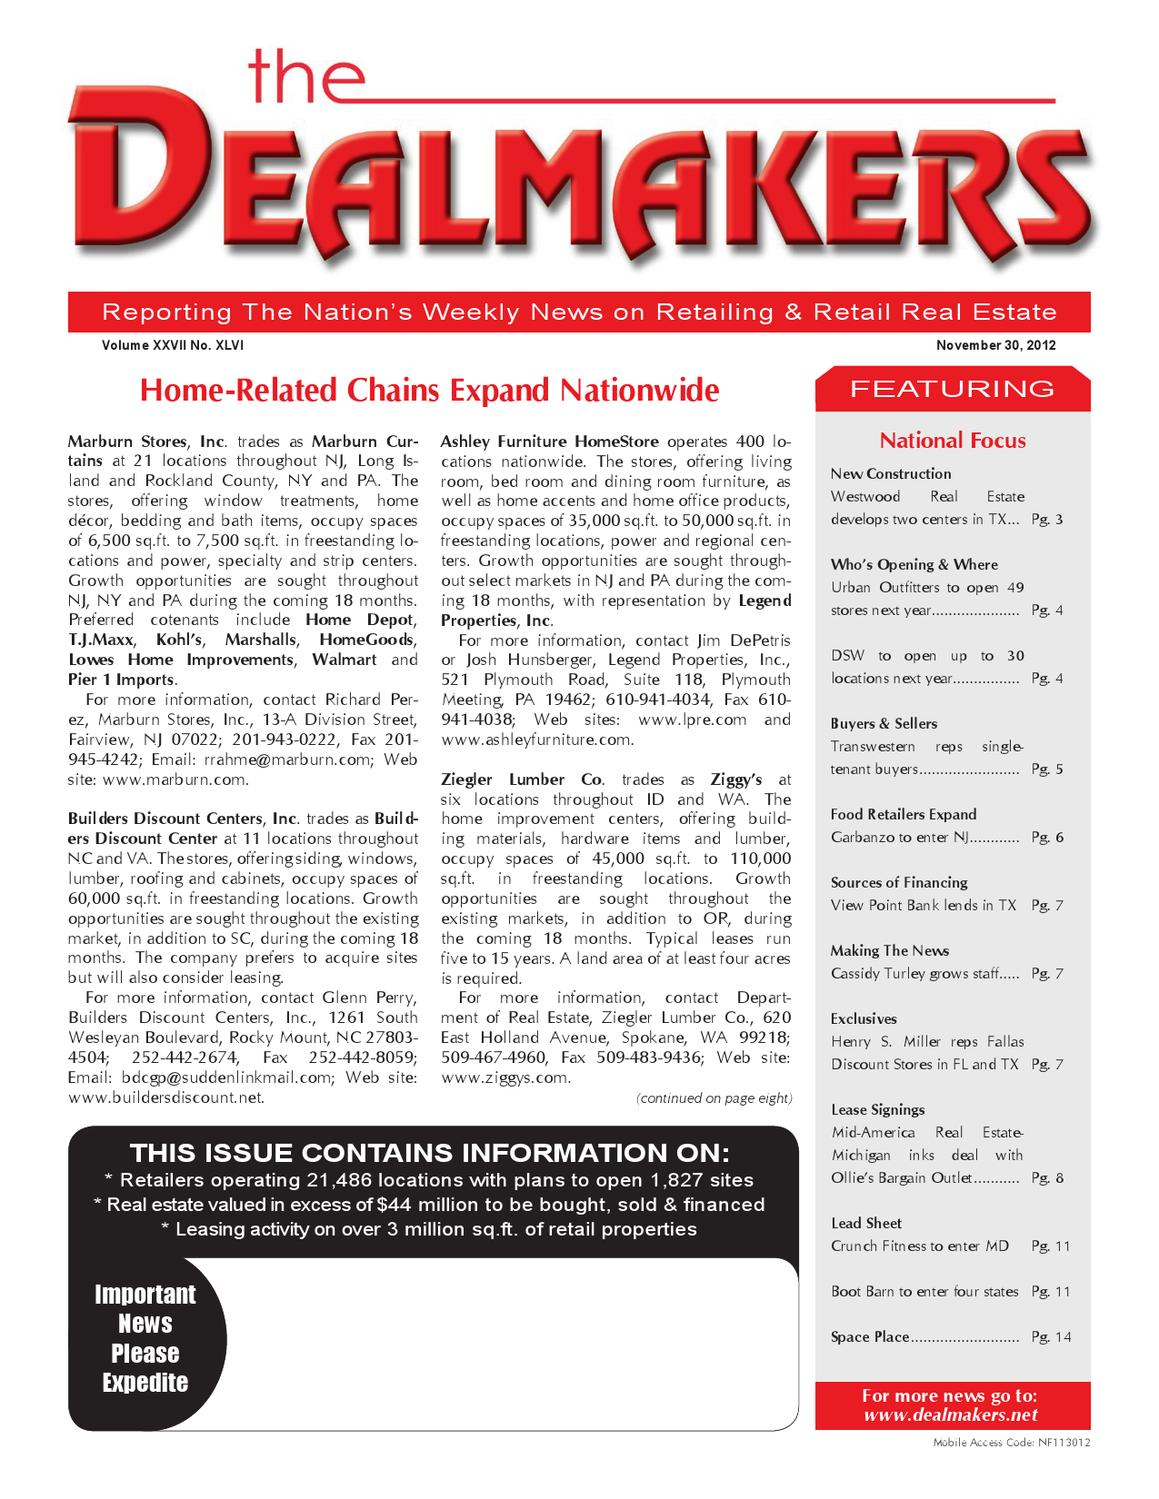 Dealmakers Magazine November 30 2012 By The Dealmakers